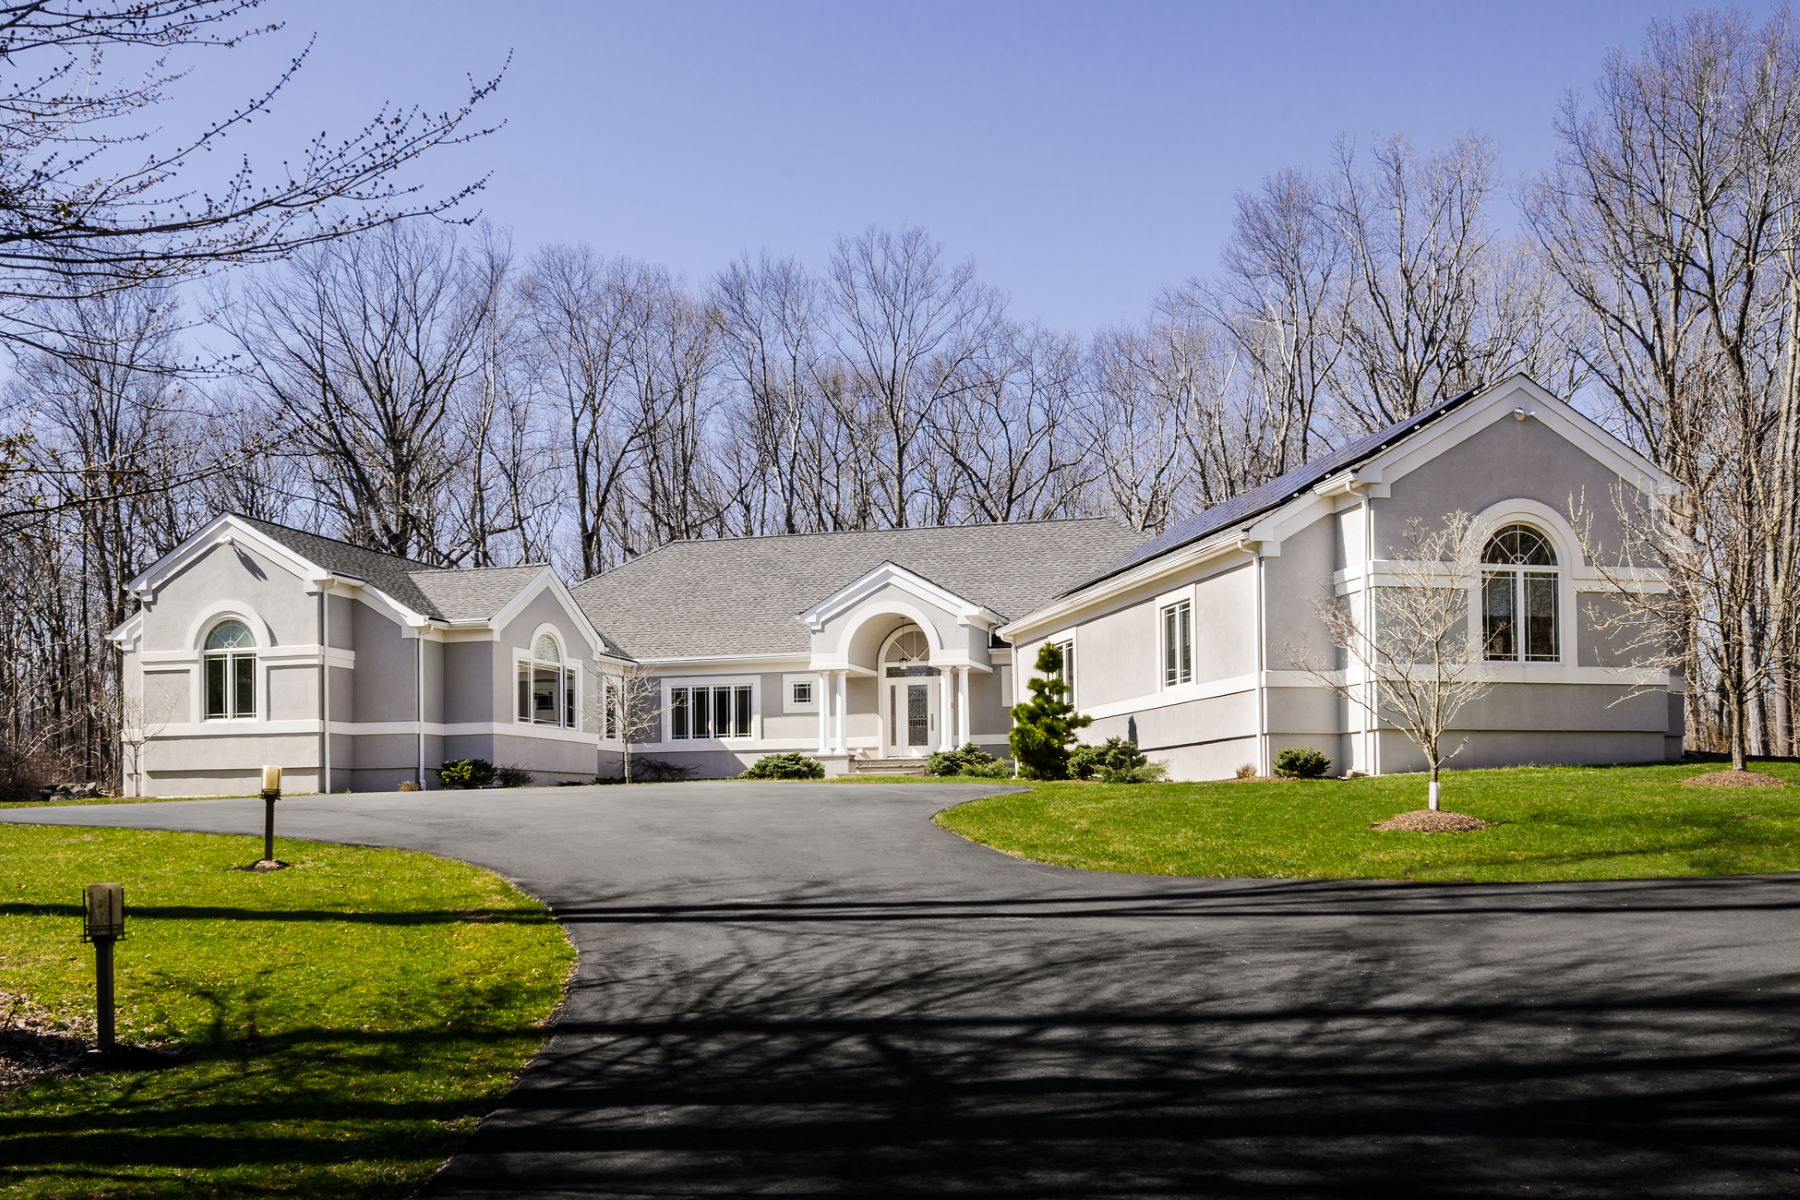 Single Family Home for Sale at Packed With Designer Style - East Amwell Township 170 Mountain Road Ringoes, 08551 United States